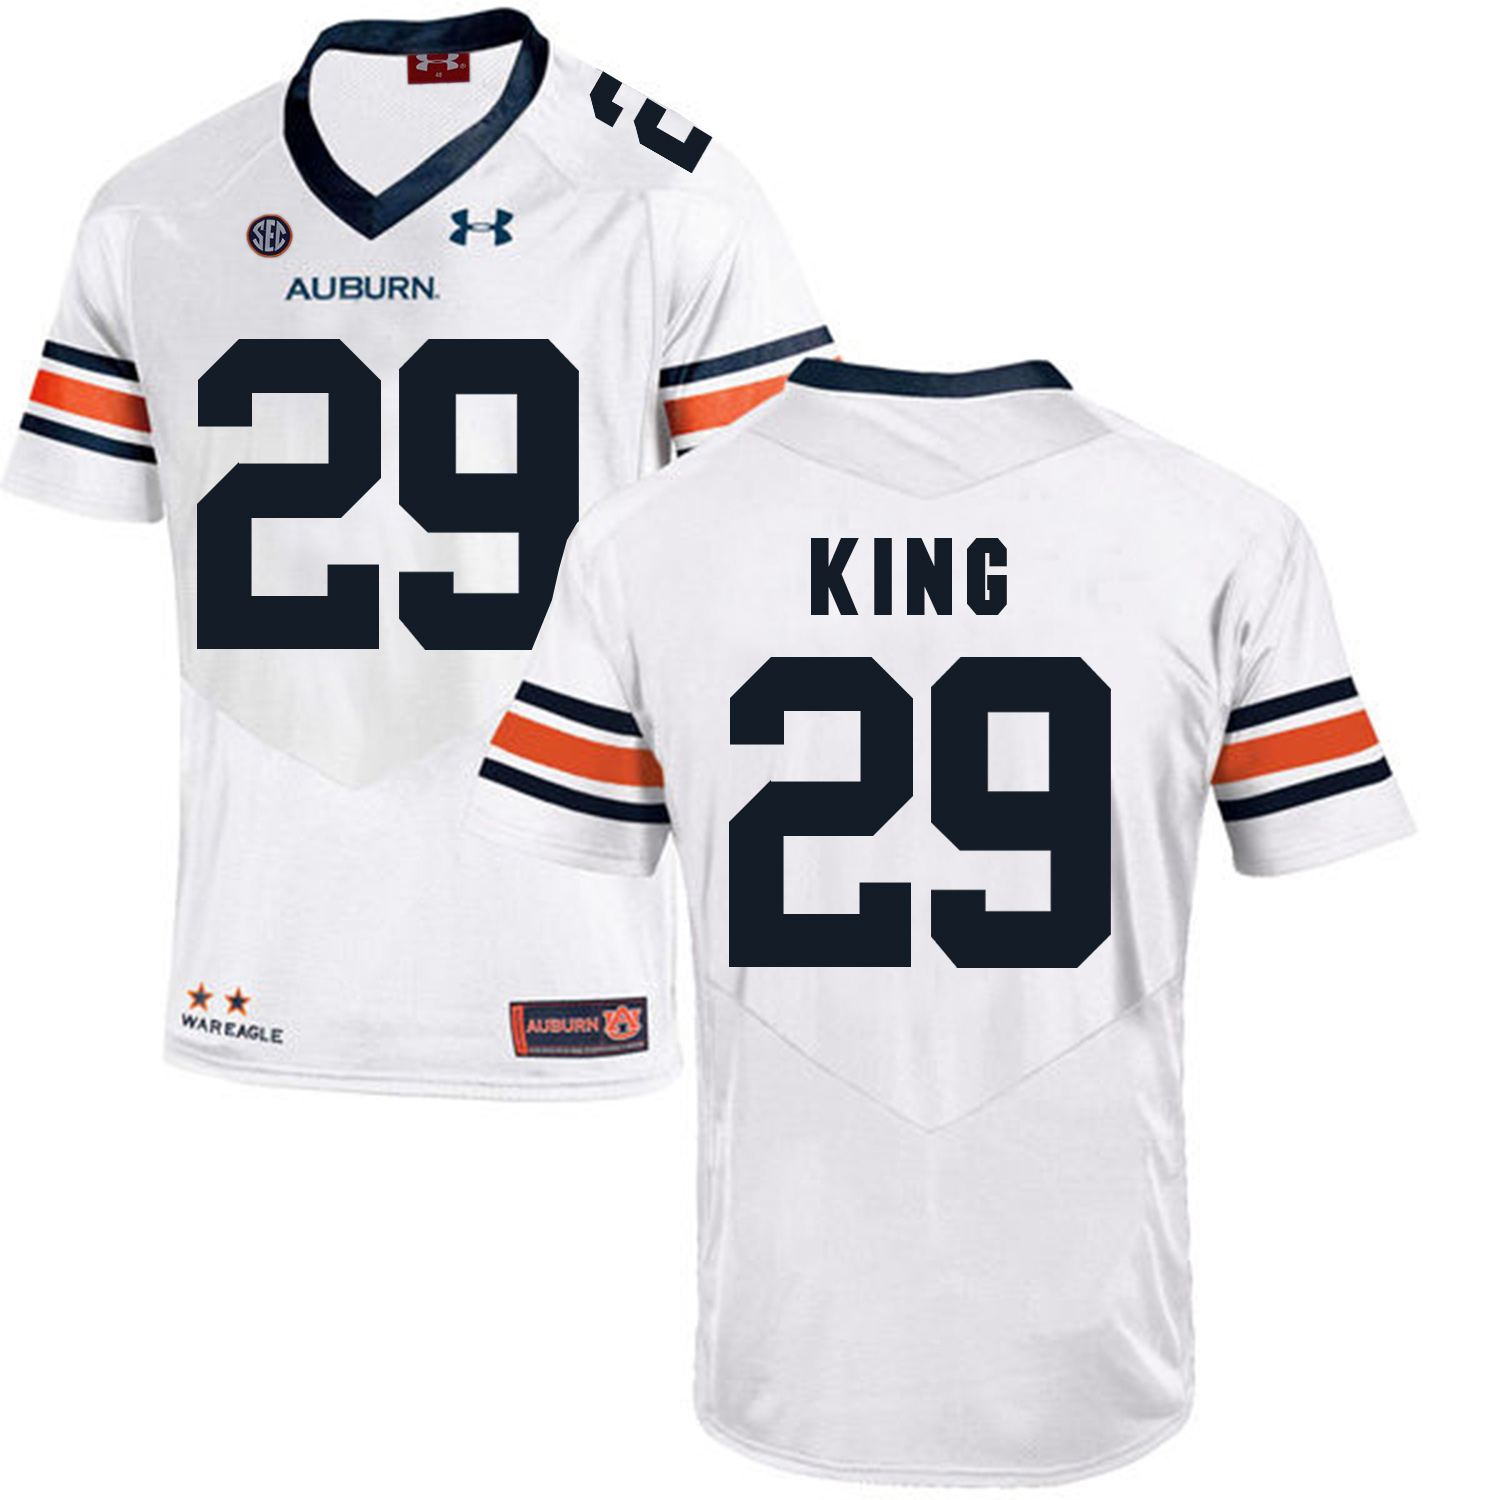 Auburn Tigers 29 Brandon King White College Football Jersey